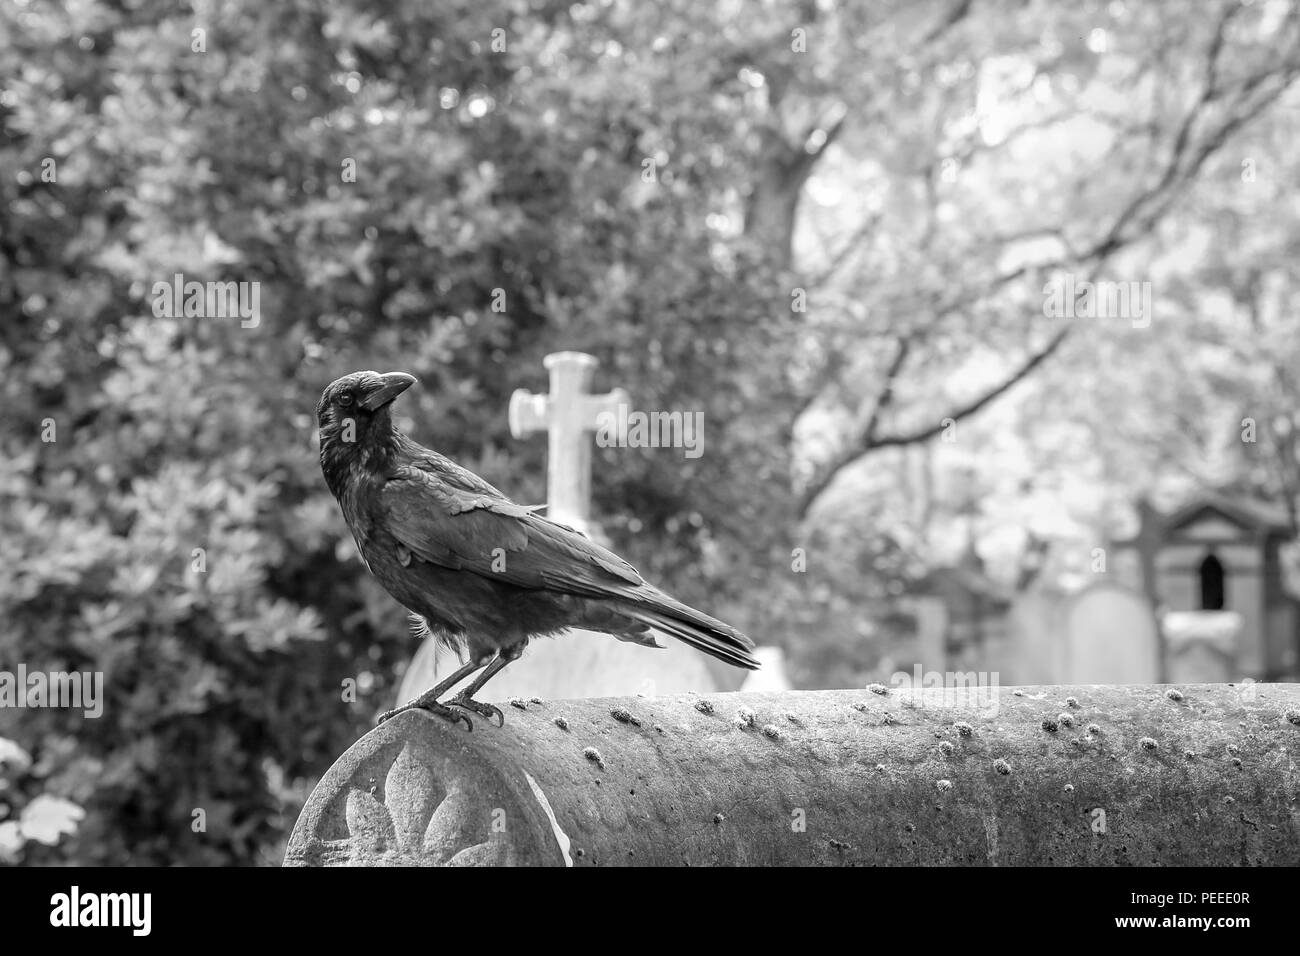 A depressive picture of a crow standing on the grave on a cemetery. - Stock Image